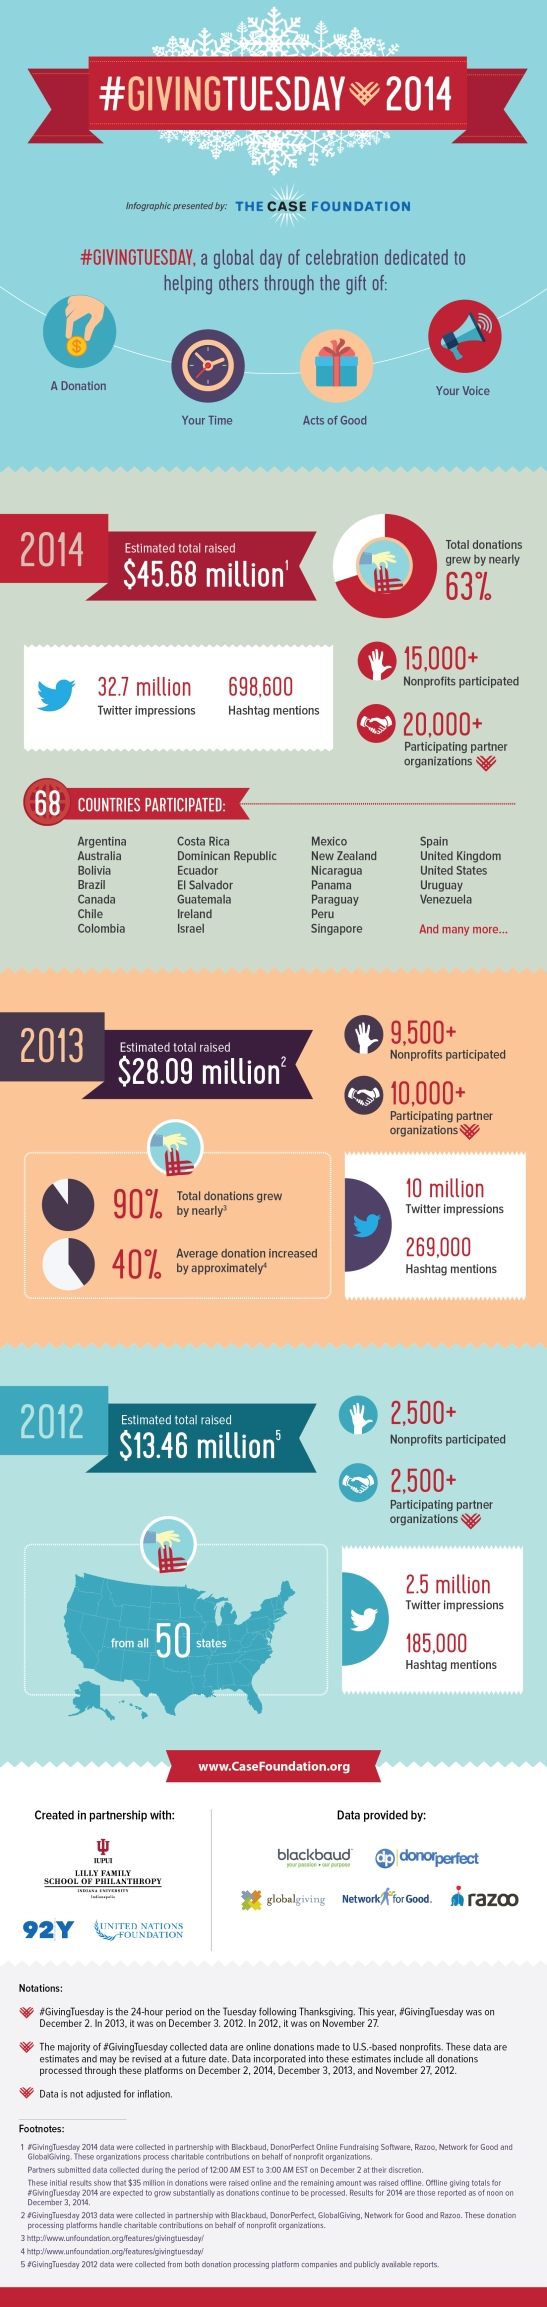 GivingTuesdayInfographic